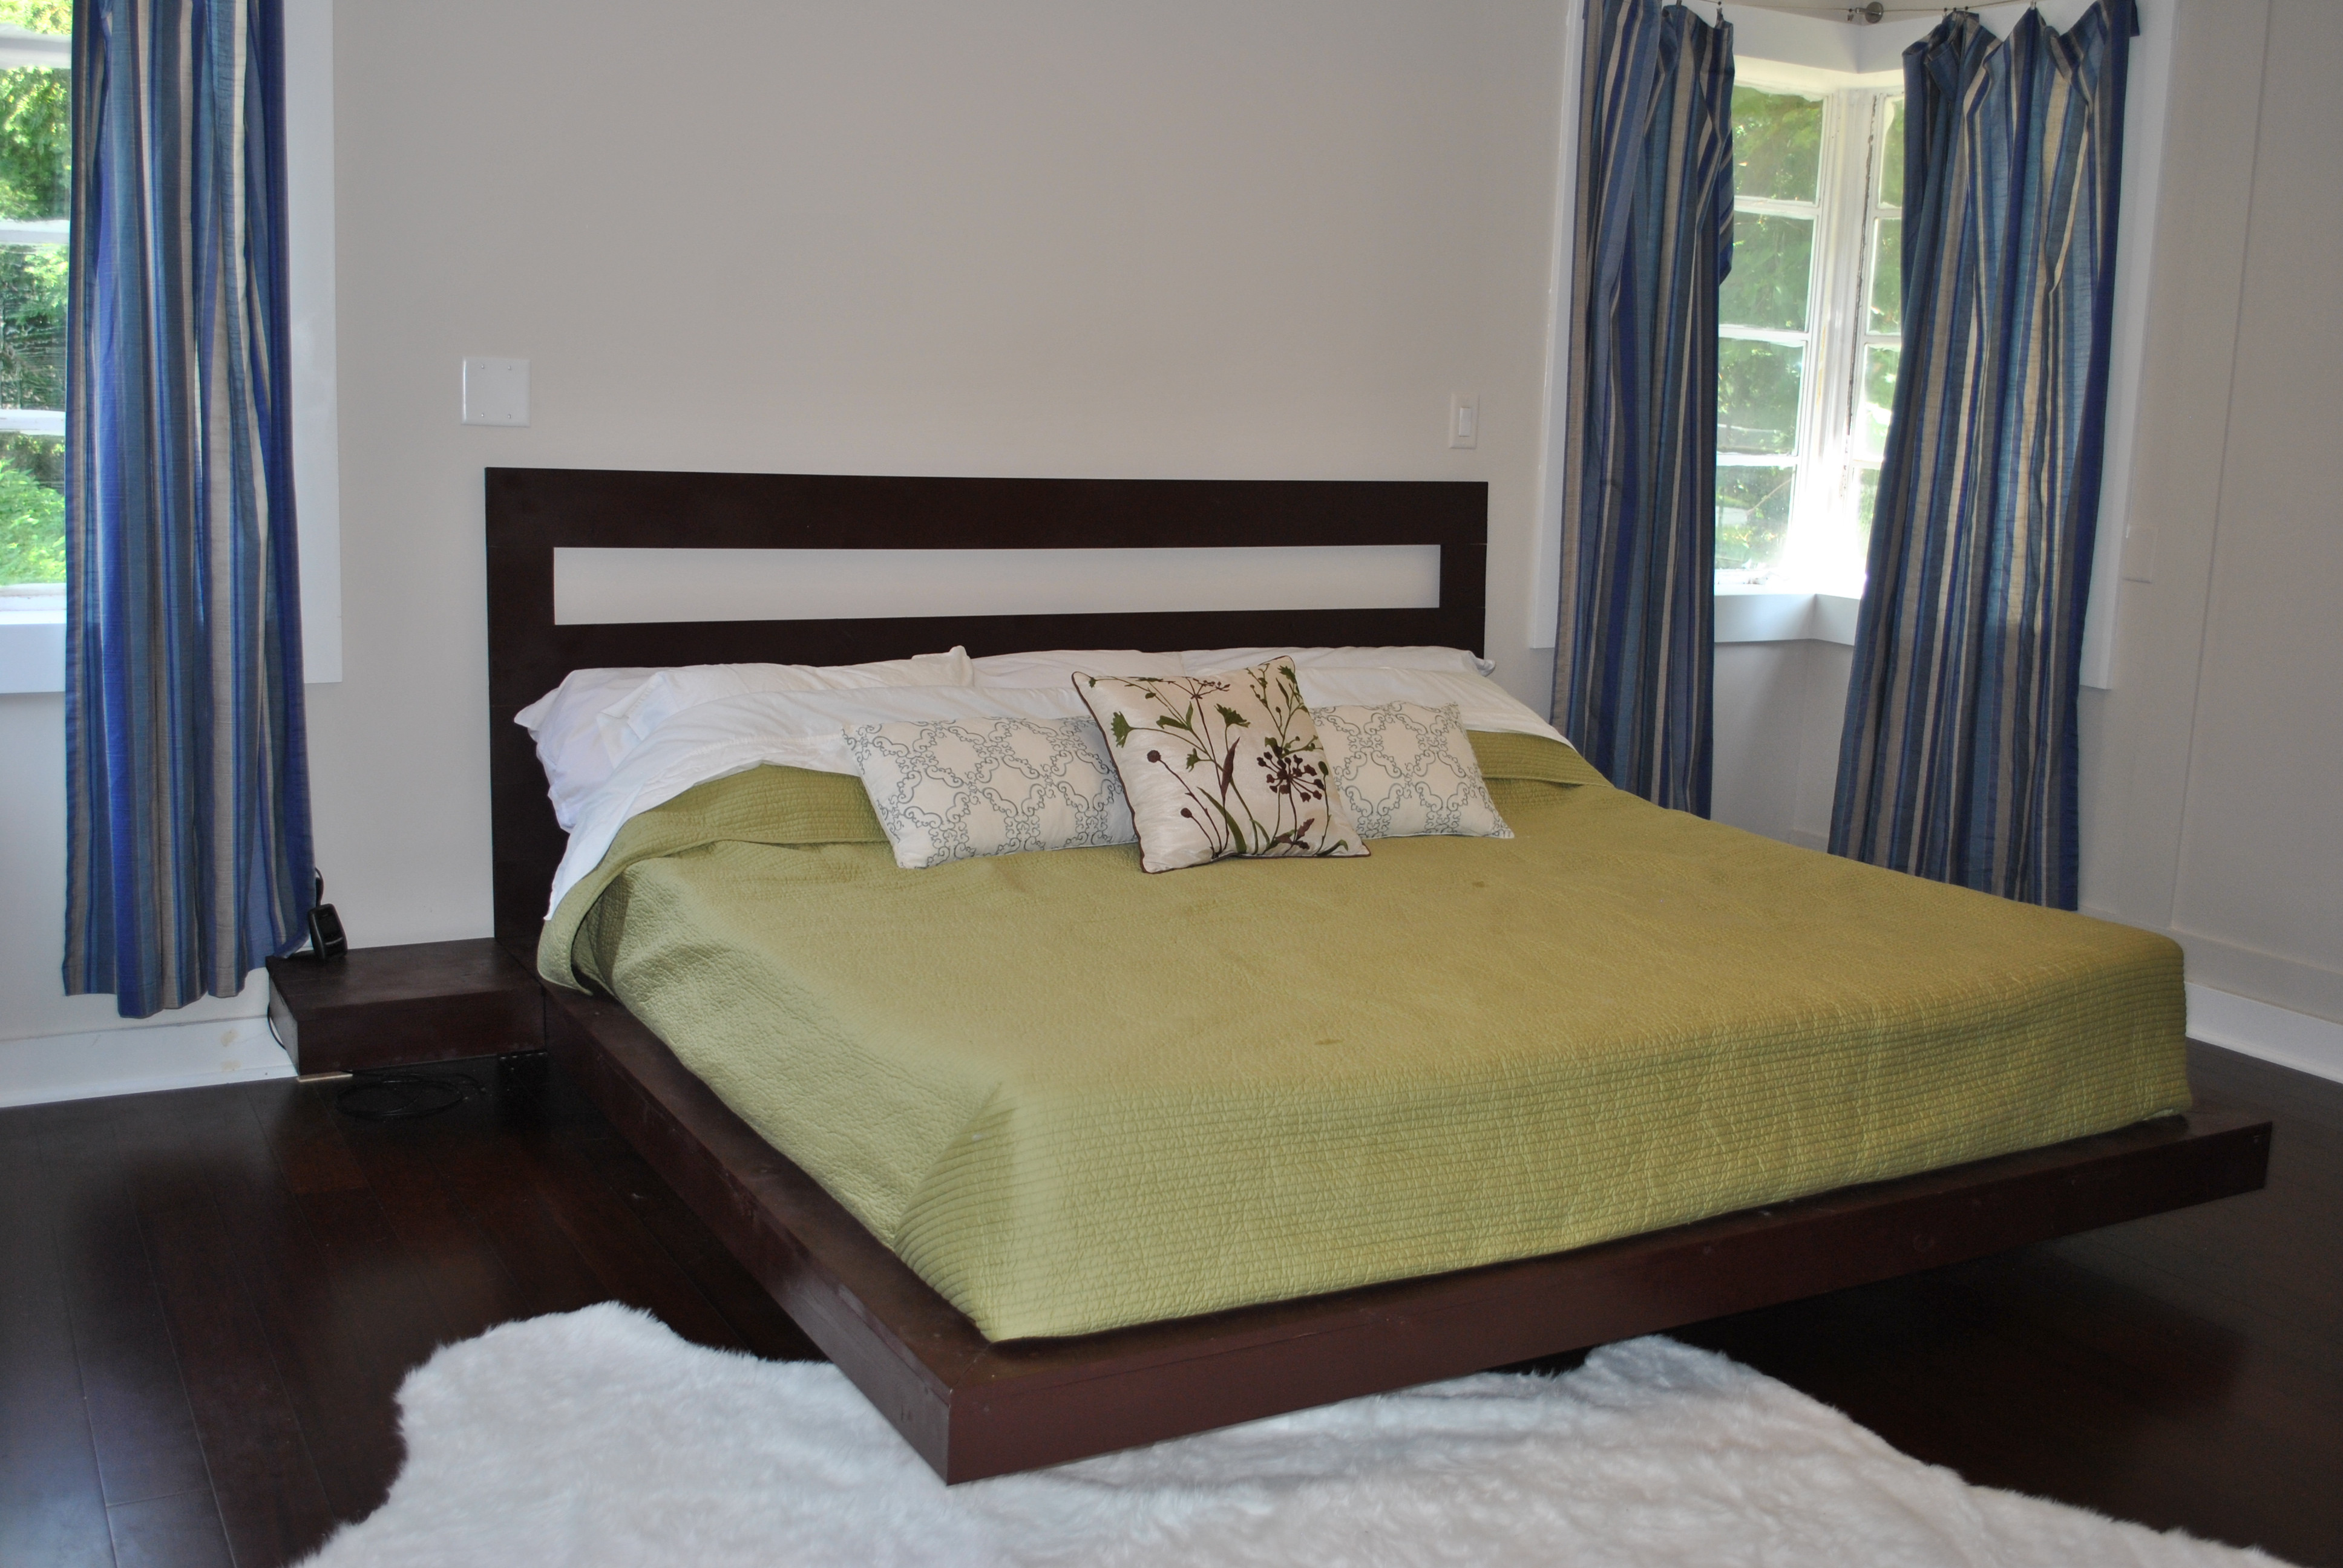 Best ideas about DIY King Beds . Save or Pin DIY king bed frame Now.